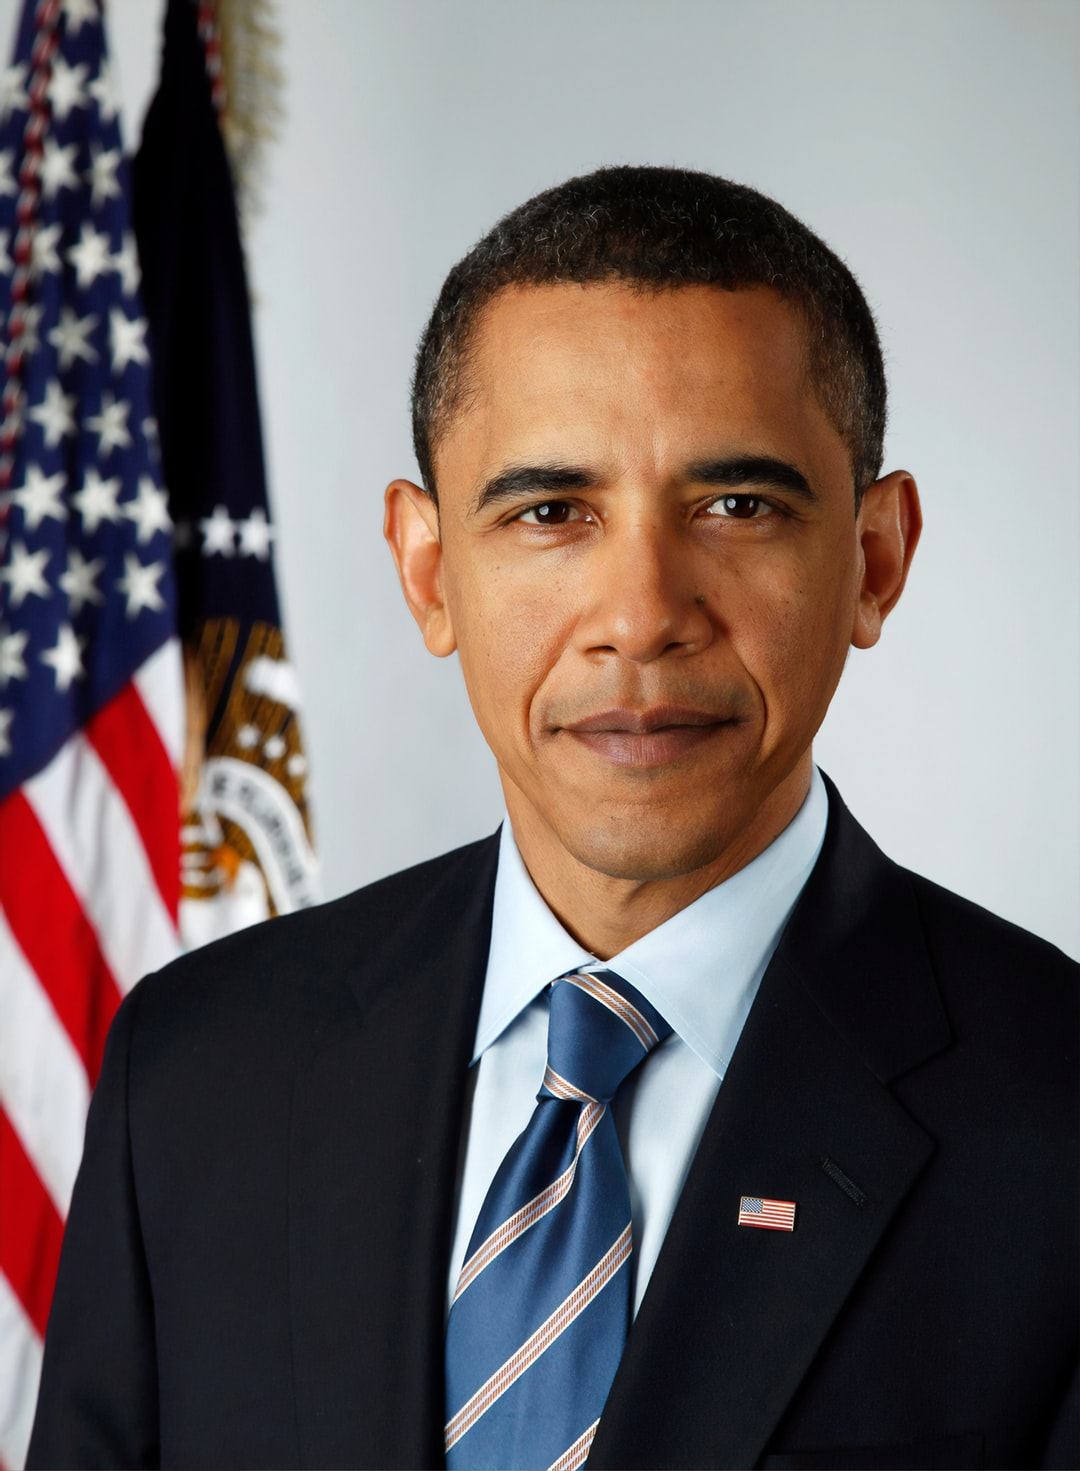 Official portrait of President-elect Barack Obama. Digital photograph by photographer Pete Souza, 2009. Library of Congress Prints & Photographs Division. 